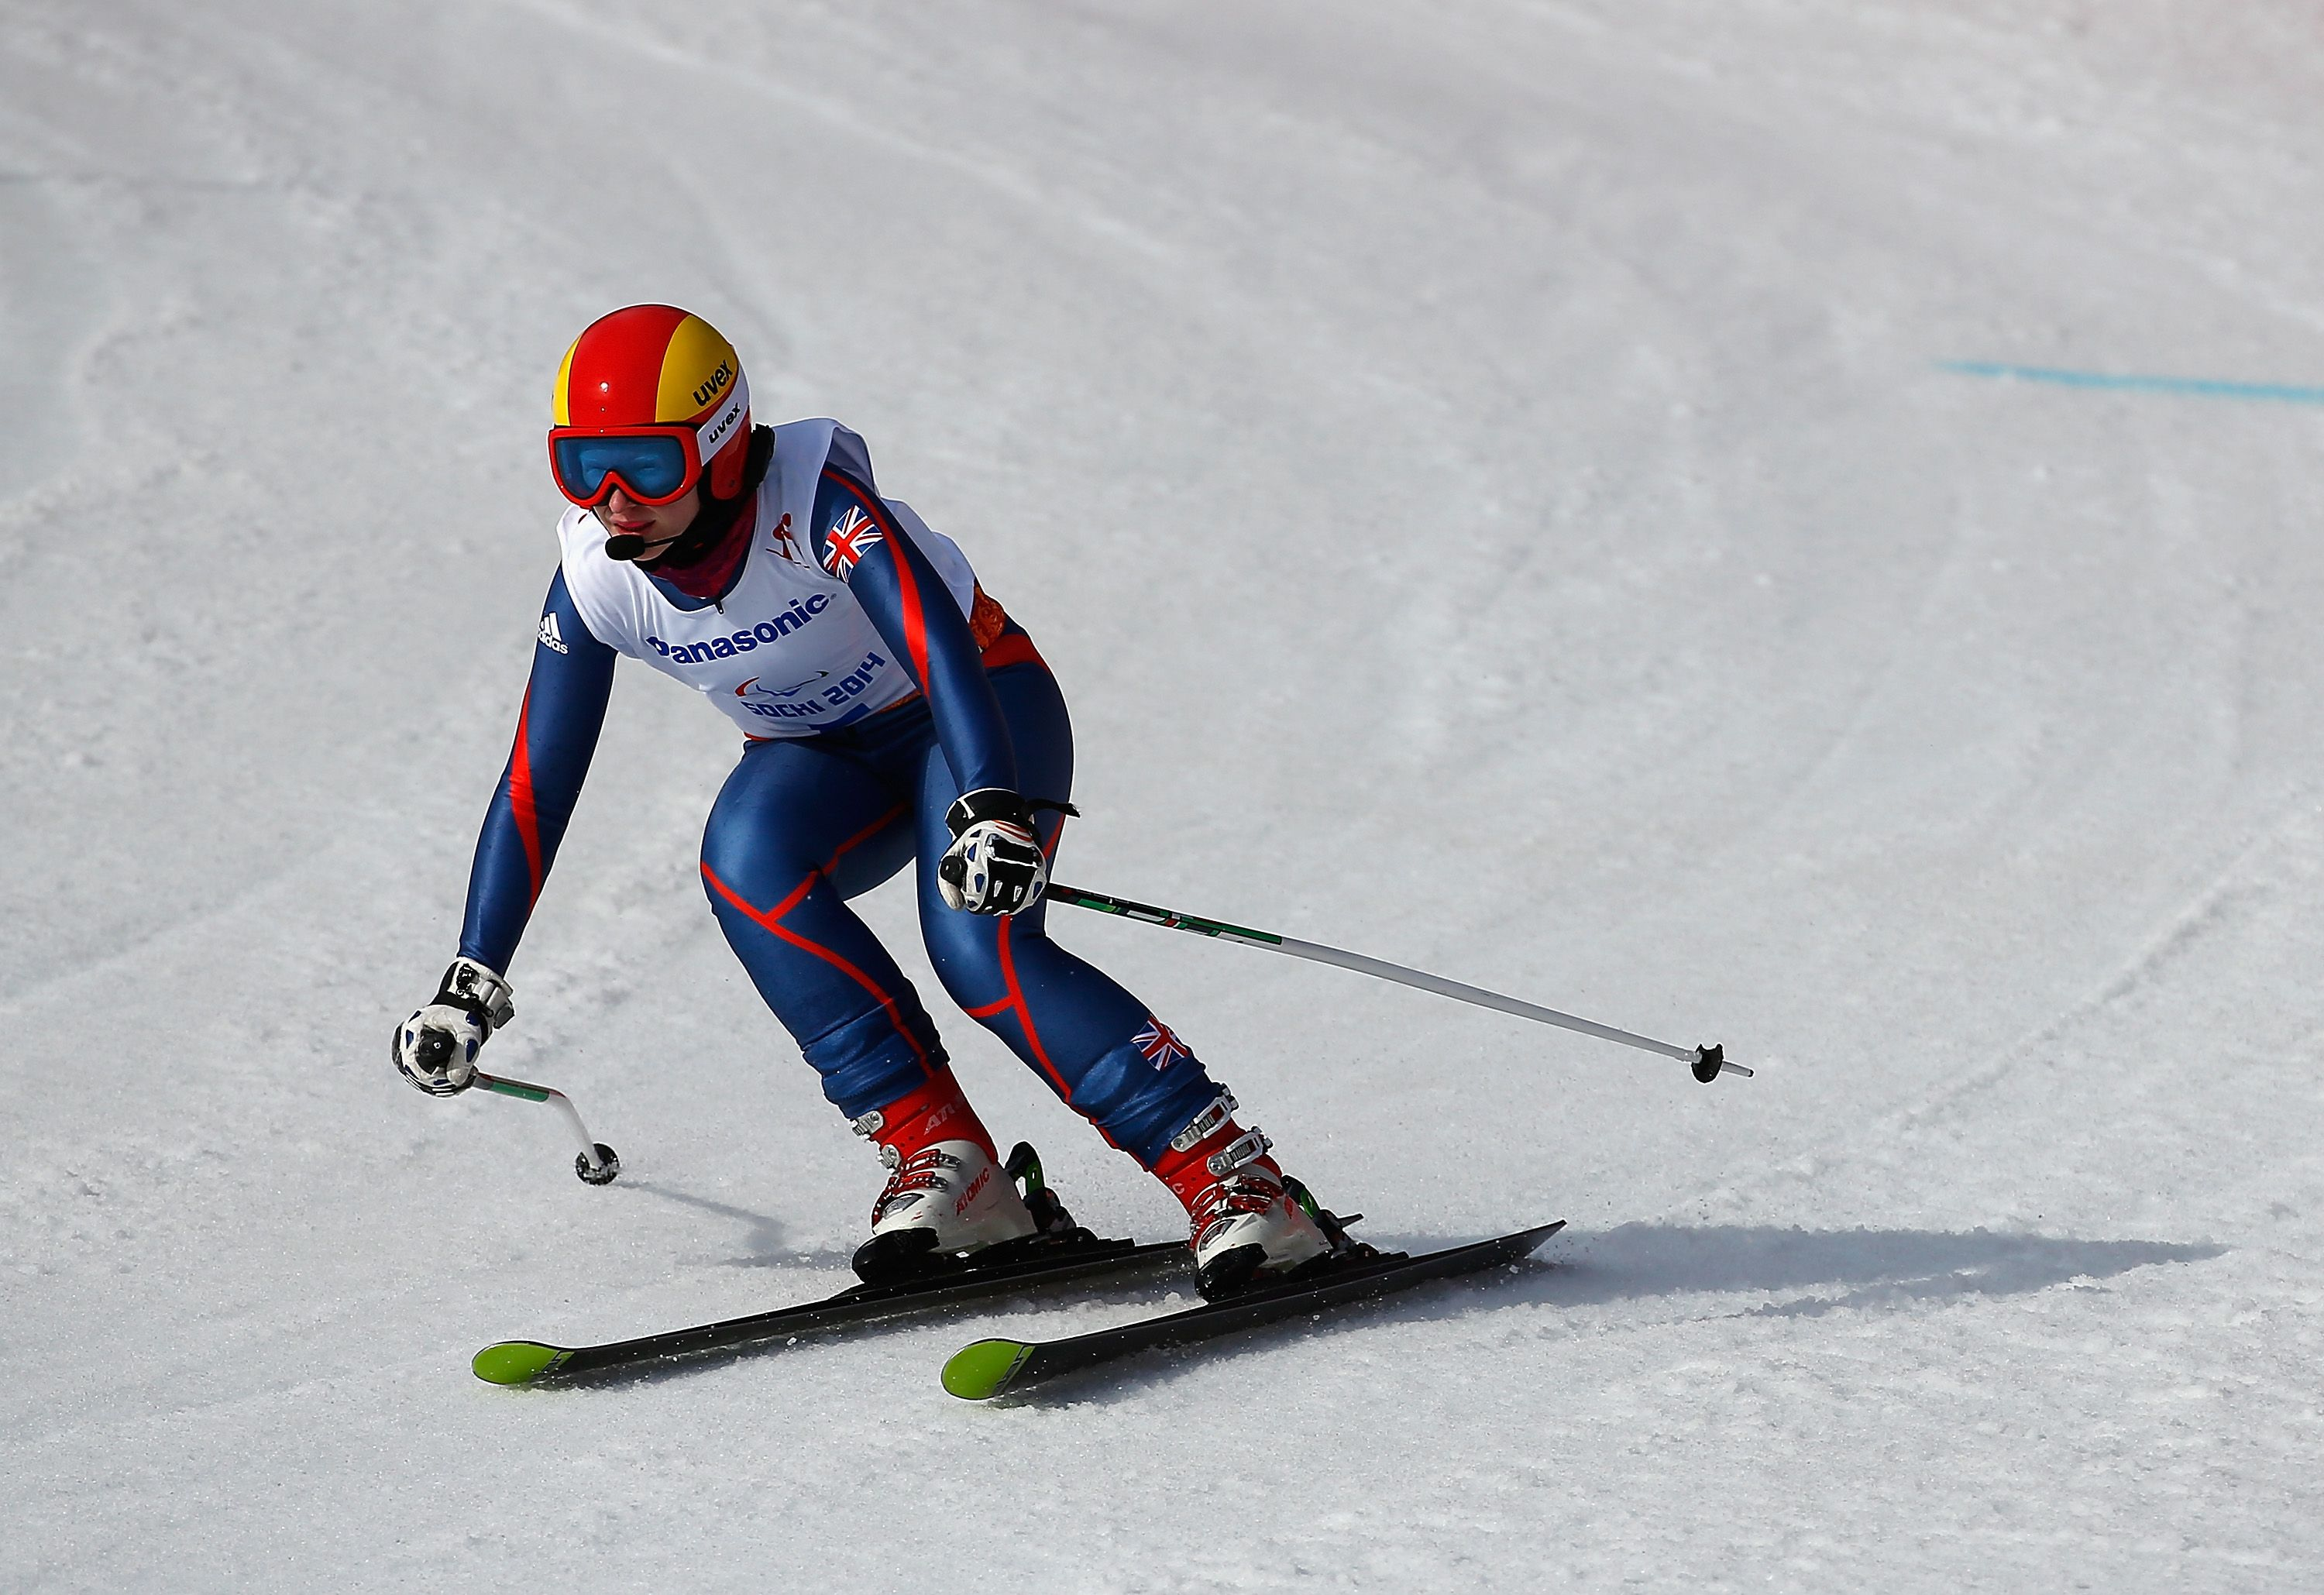 Kelly Gallagher skis in the Womens Downhill in Sochi #GoParalympicsGB